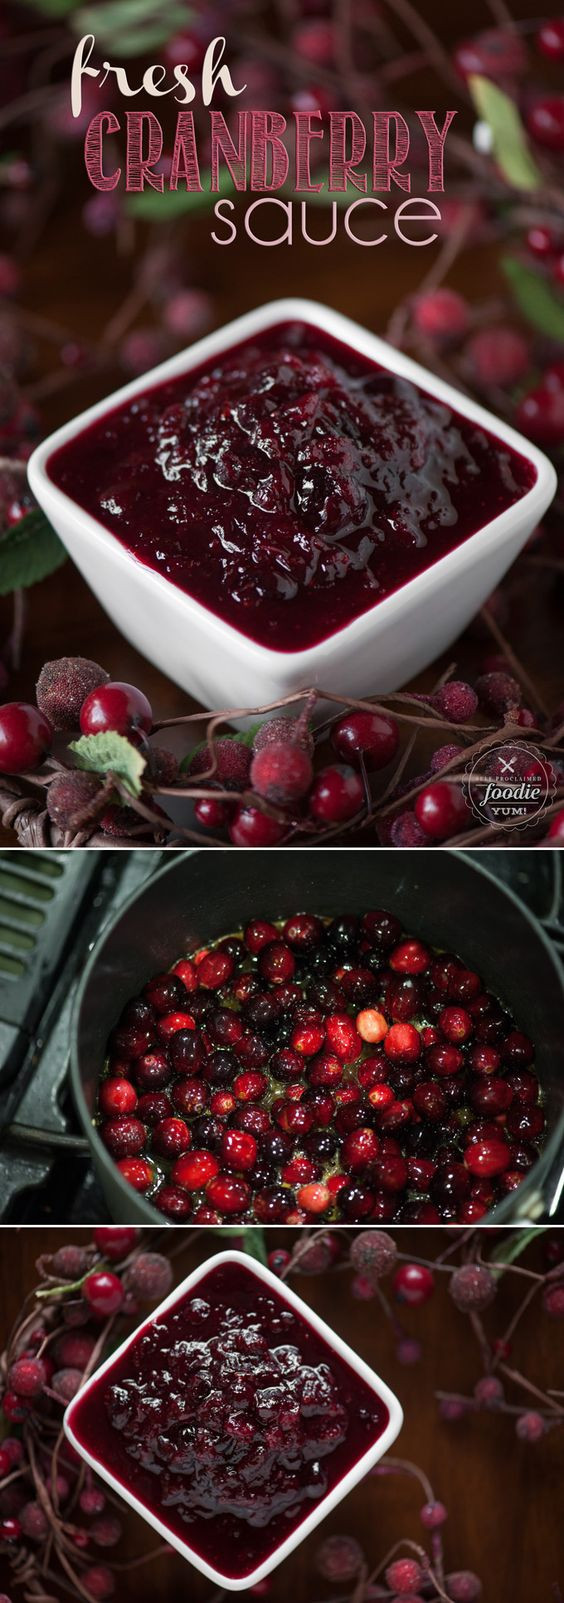 Cranberry Sauce Recipes For Thanksgiving  Cranberry sauce Recipe